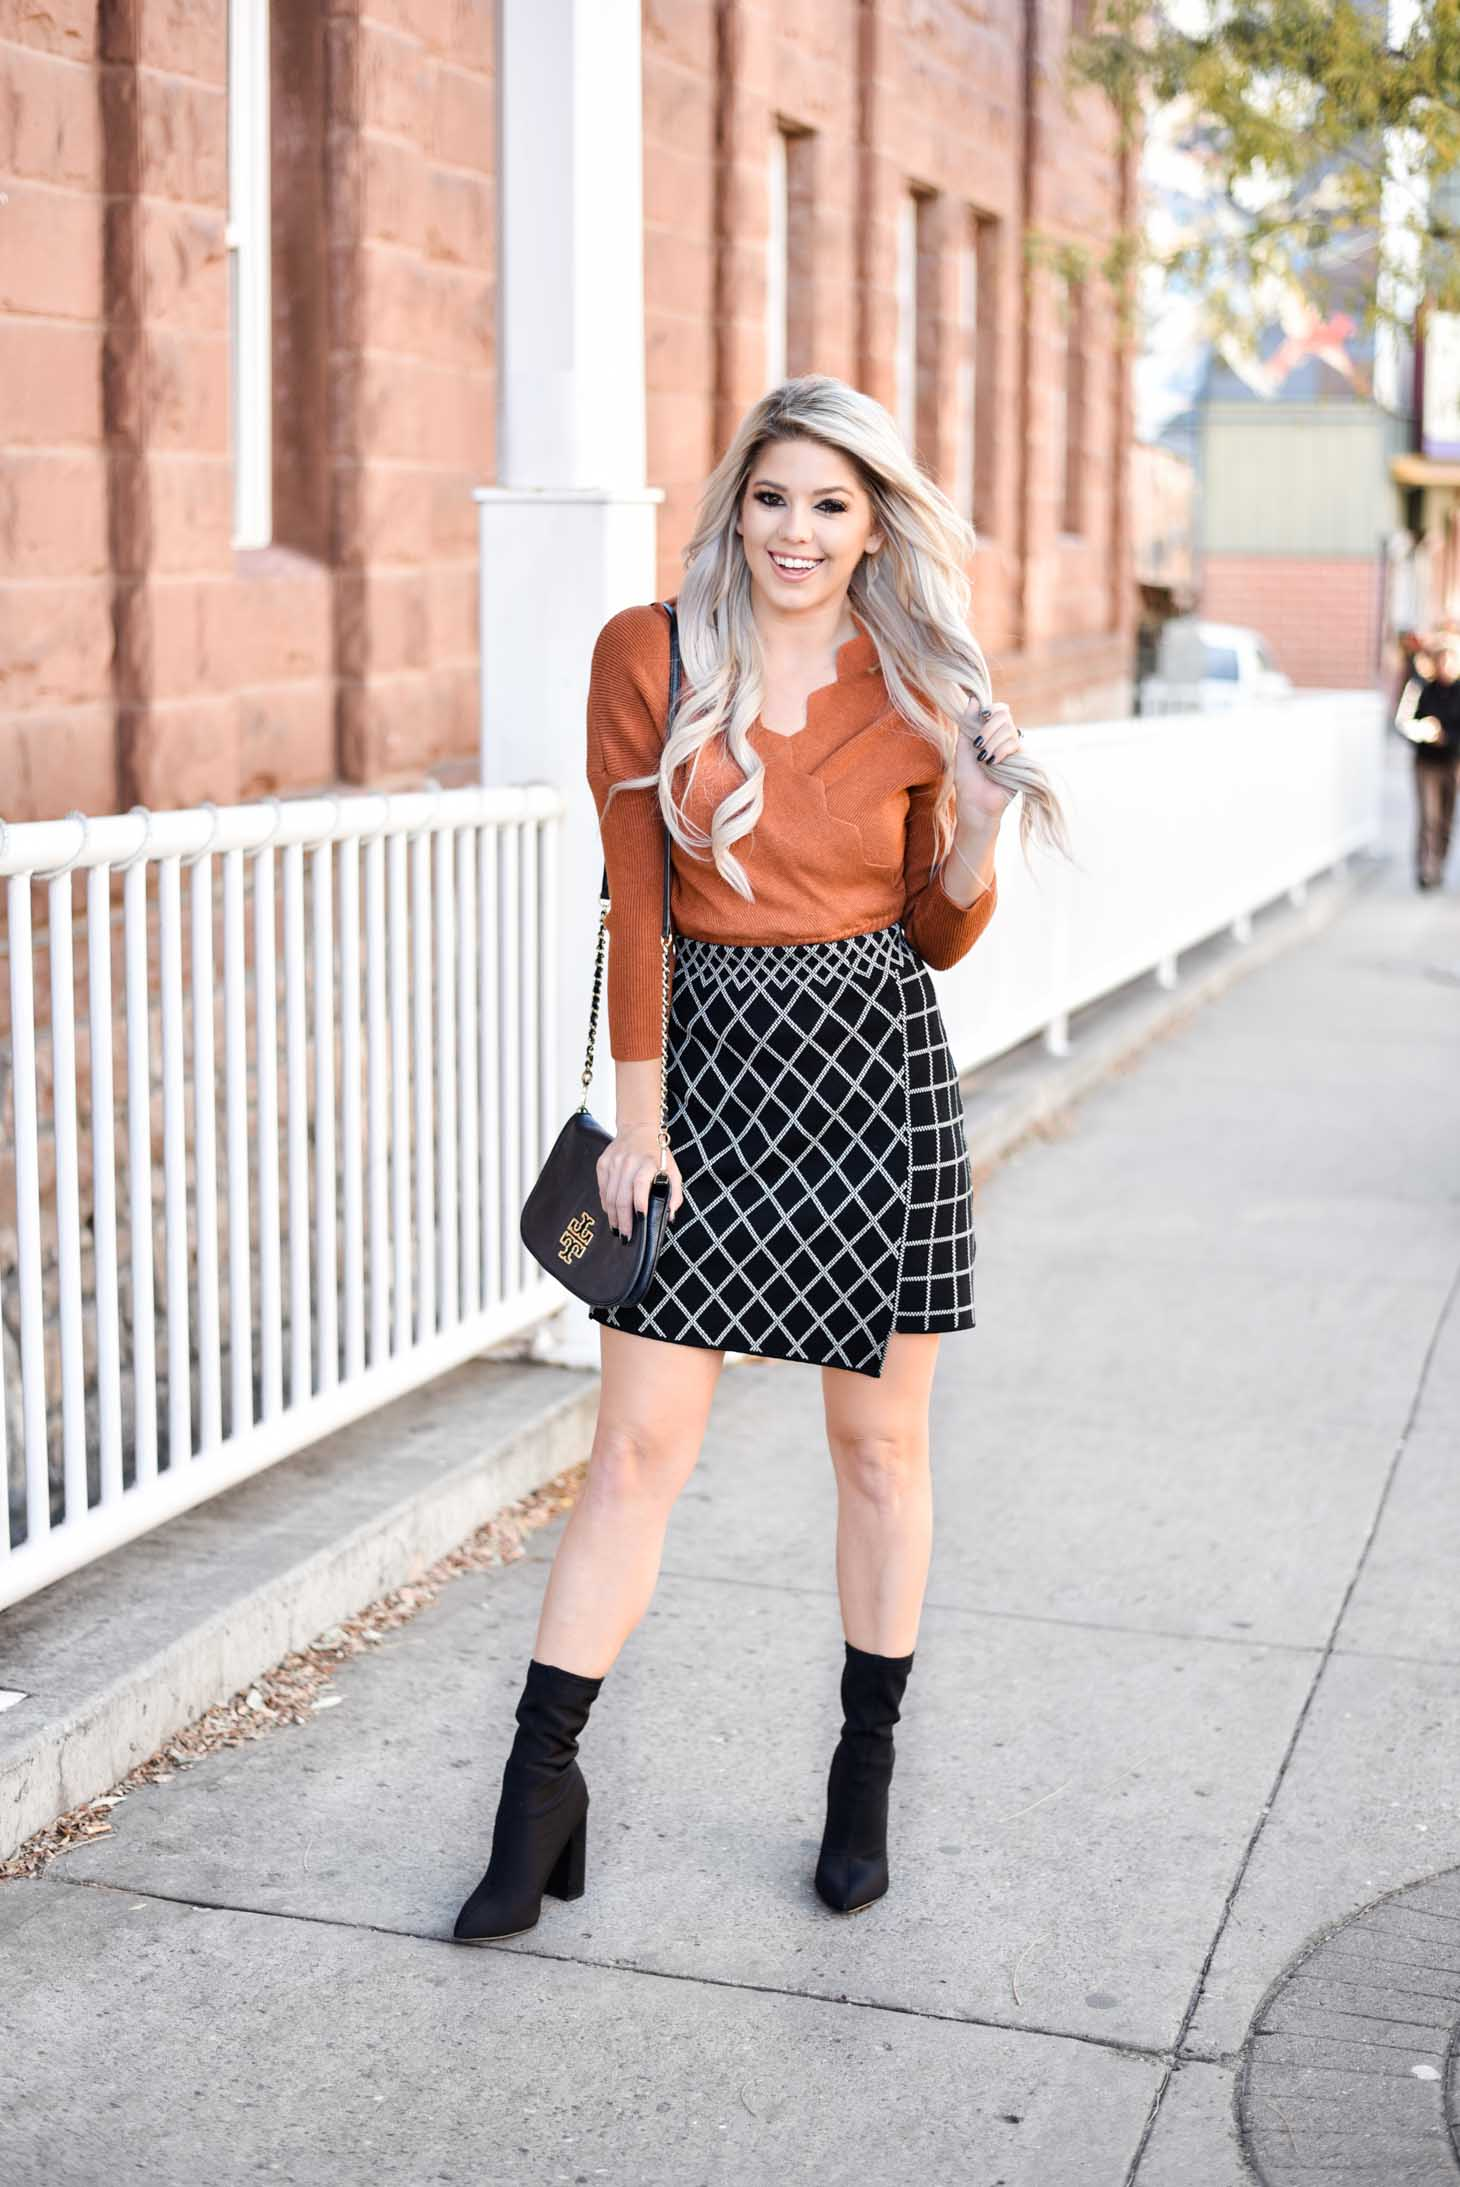 Erin Elizabeth of Wink and a Twirl shares the perfect Fall skirt and sweater combo from Chicwish